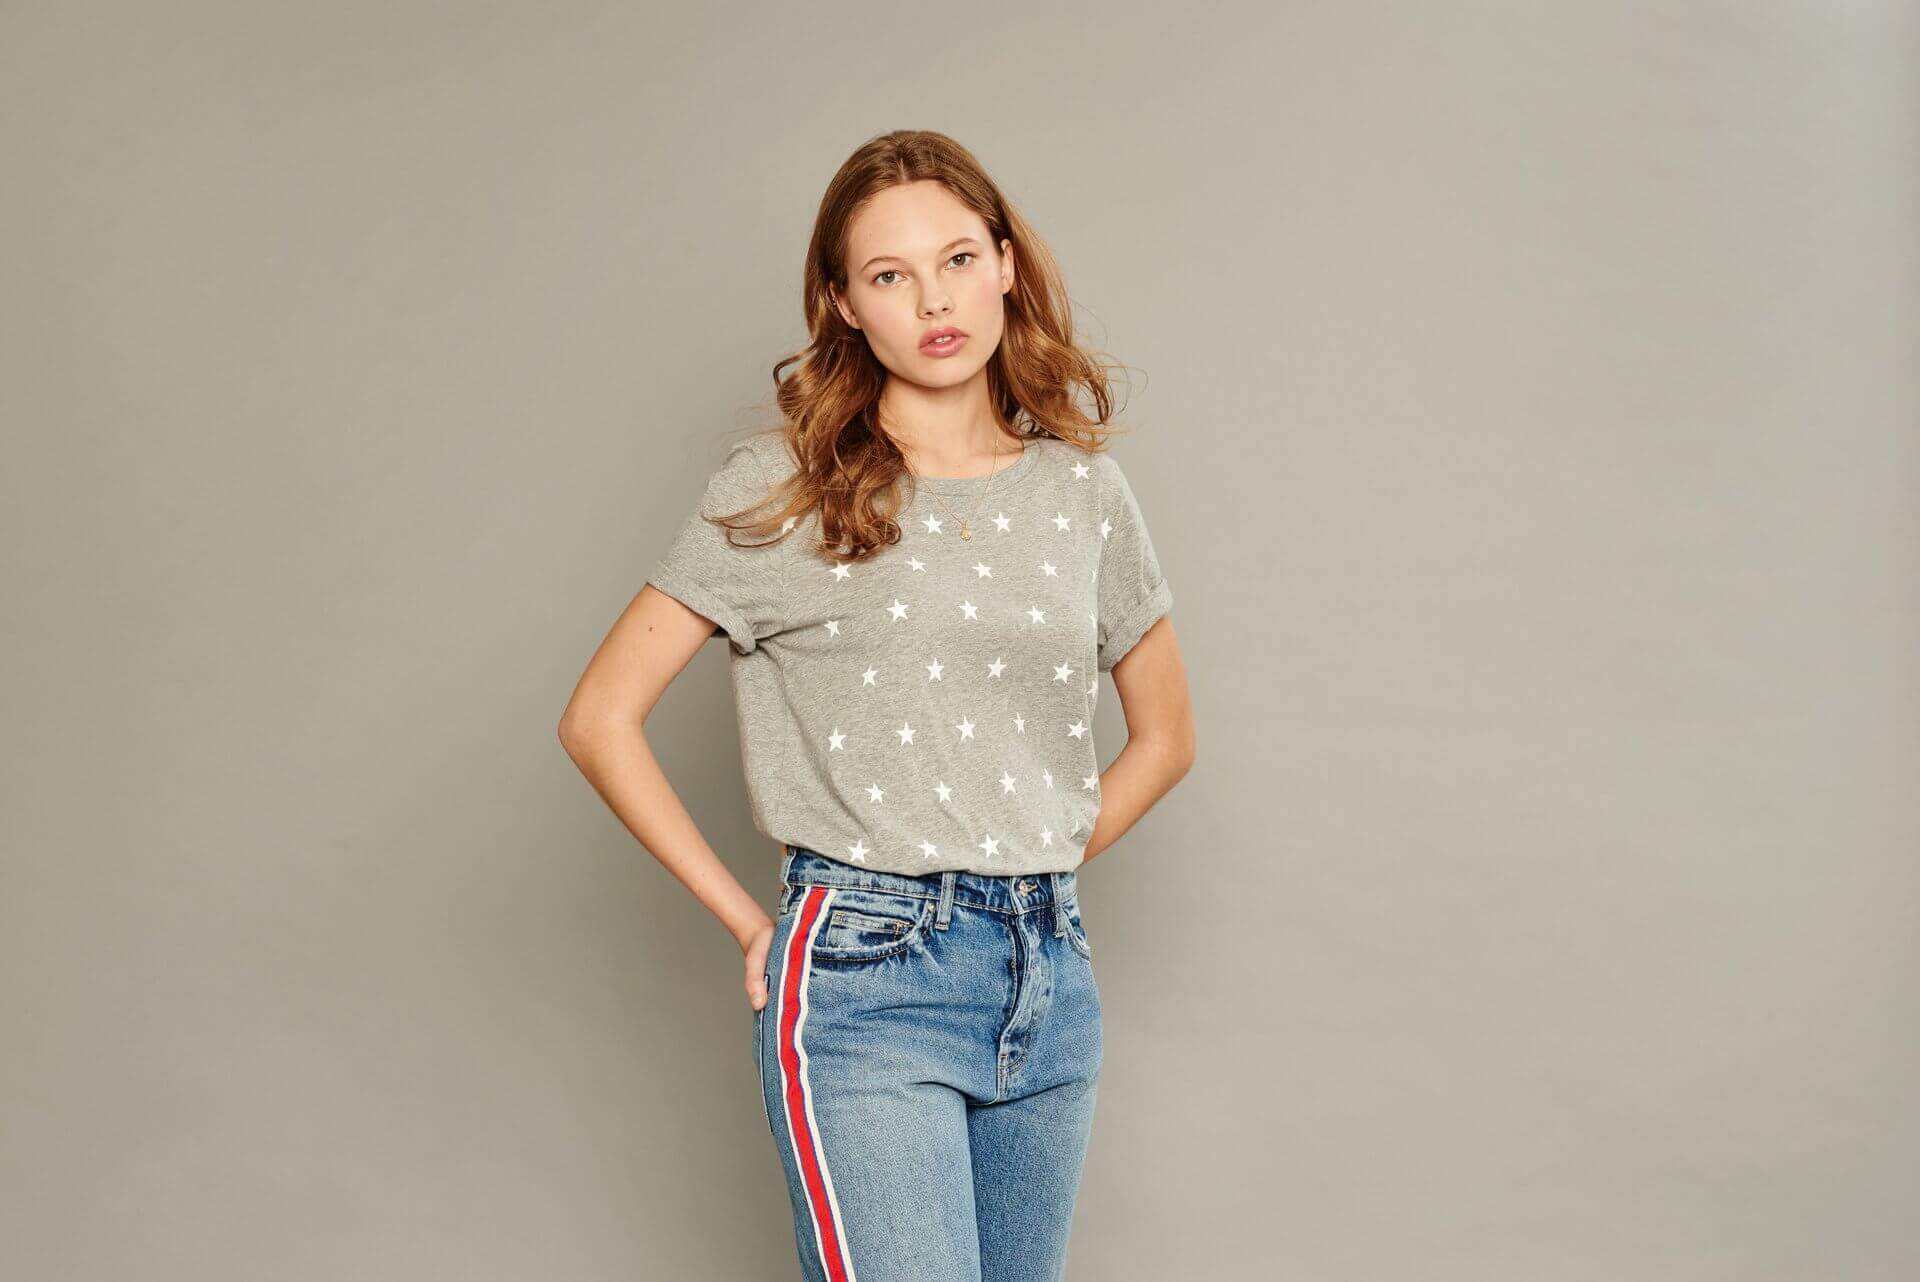 Gray t-shirt with white stars